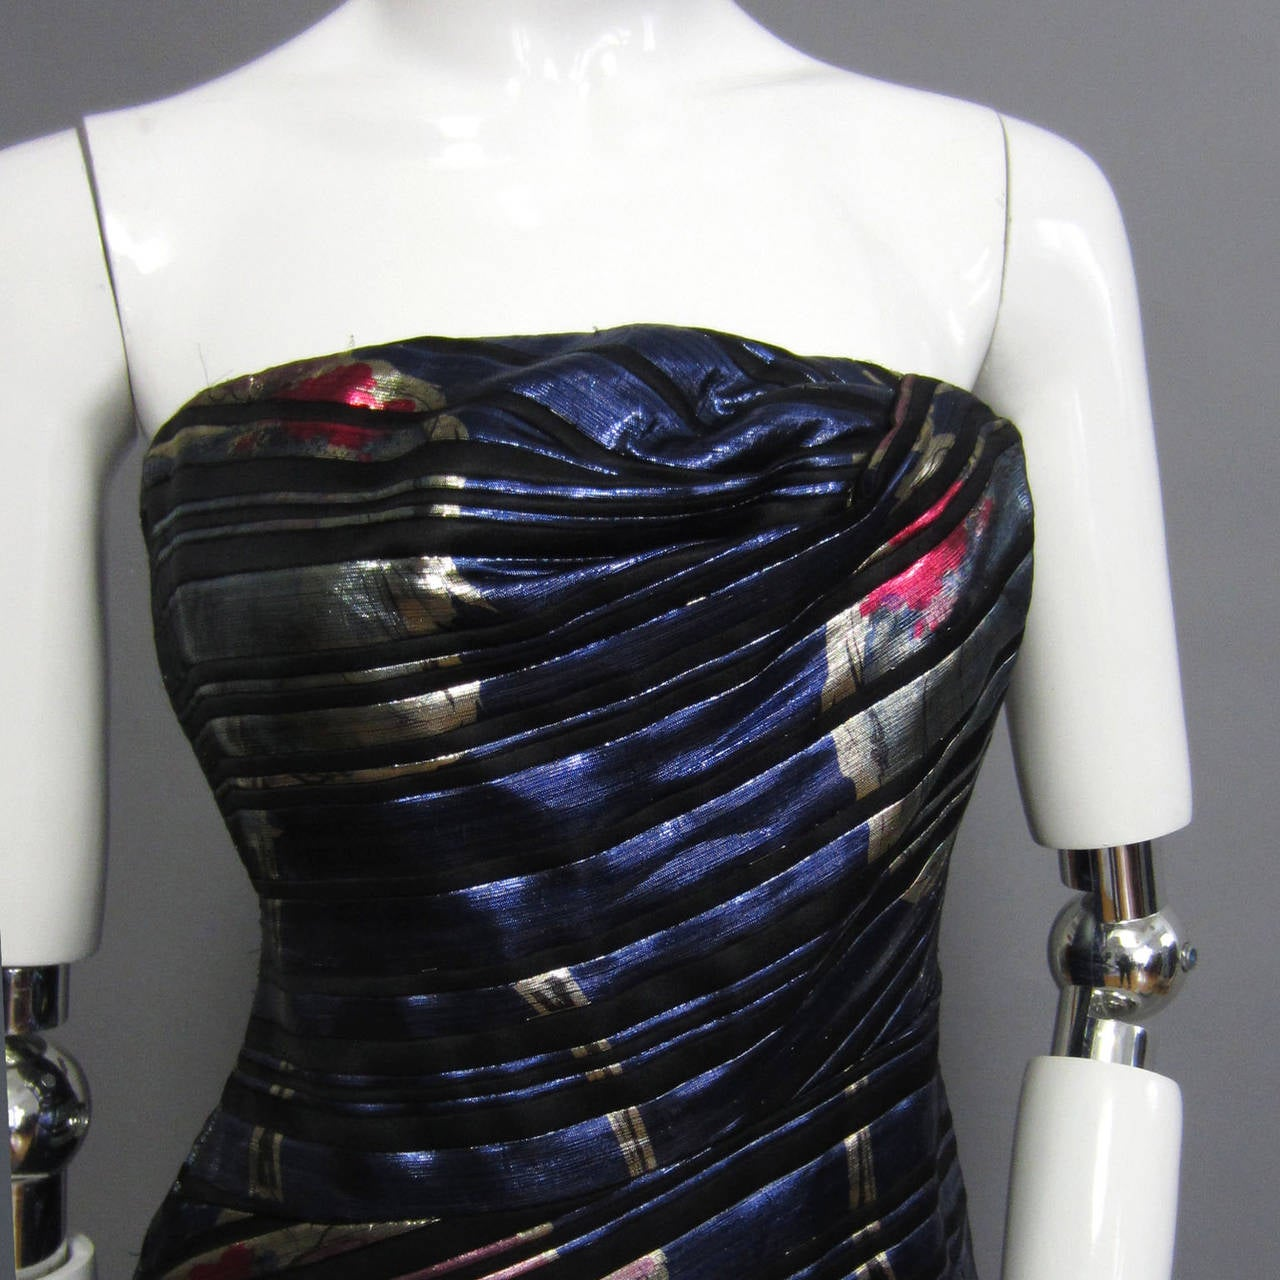 SCAASI Stunning Metallic & Floral Print Gown In Excellent Condition For Sale In New York, NY